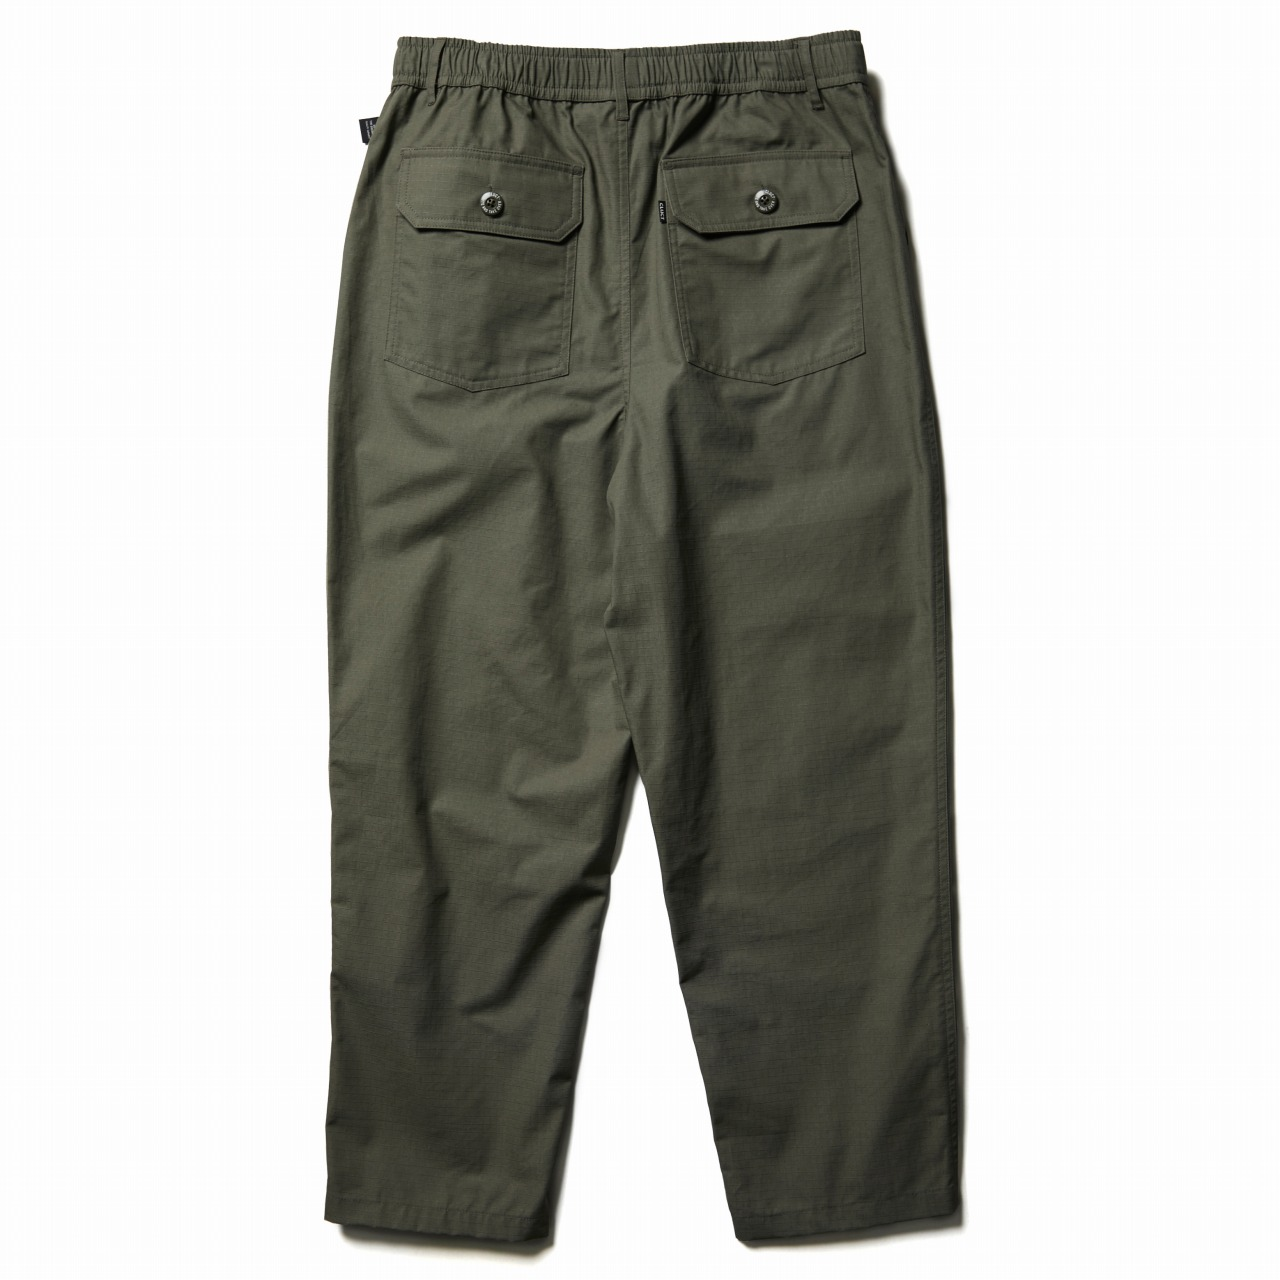 CLUCT : TACTIC [MILITARY PANTS]